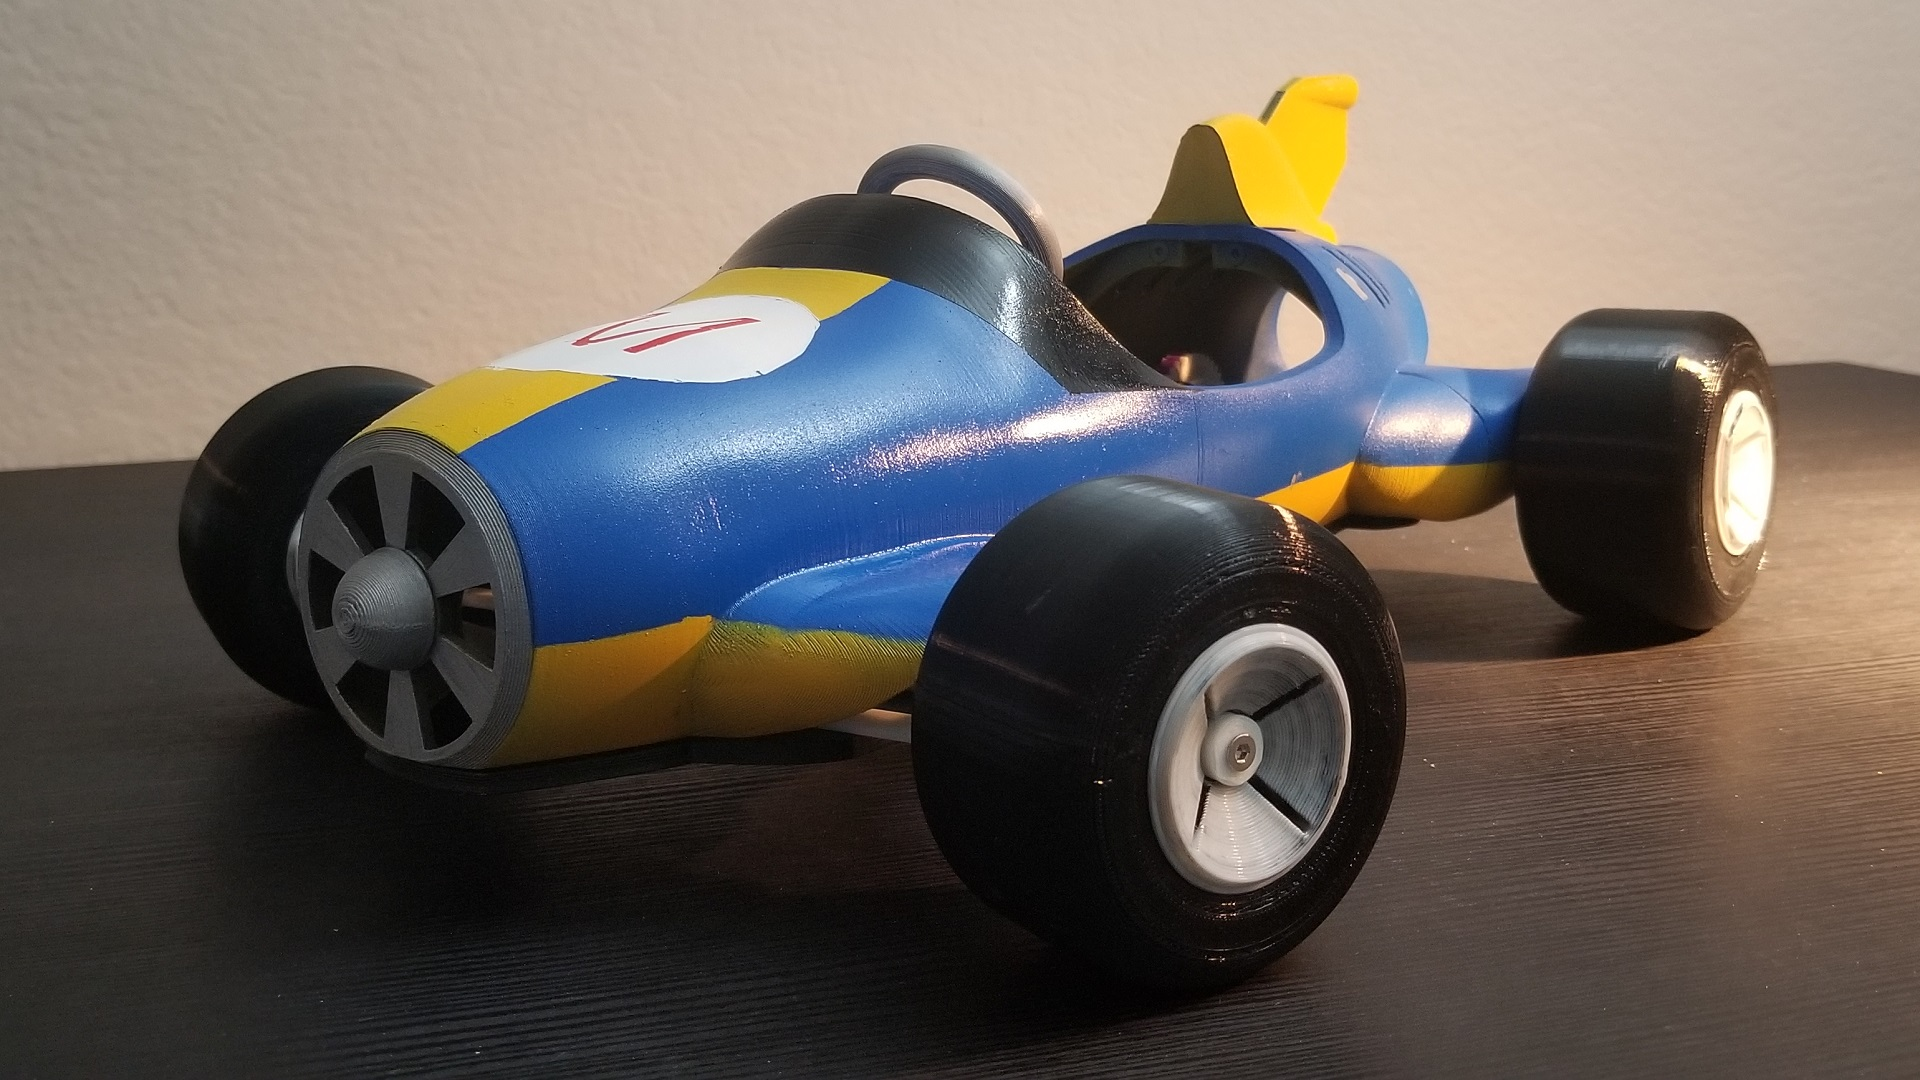 Mario Kart's Mach 8 has been 3D printed as an RC car - htxt africa